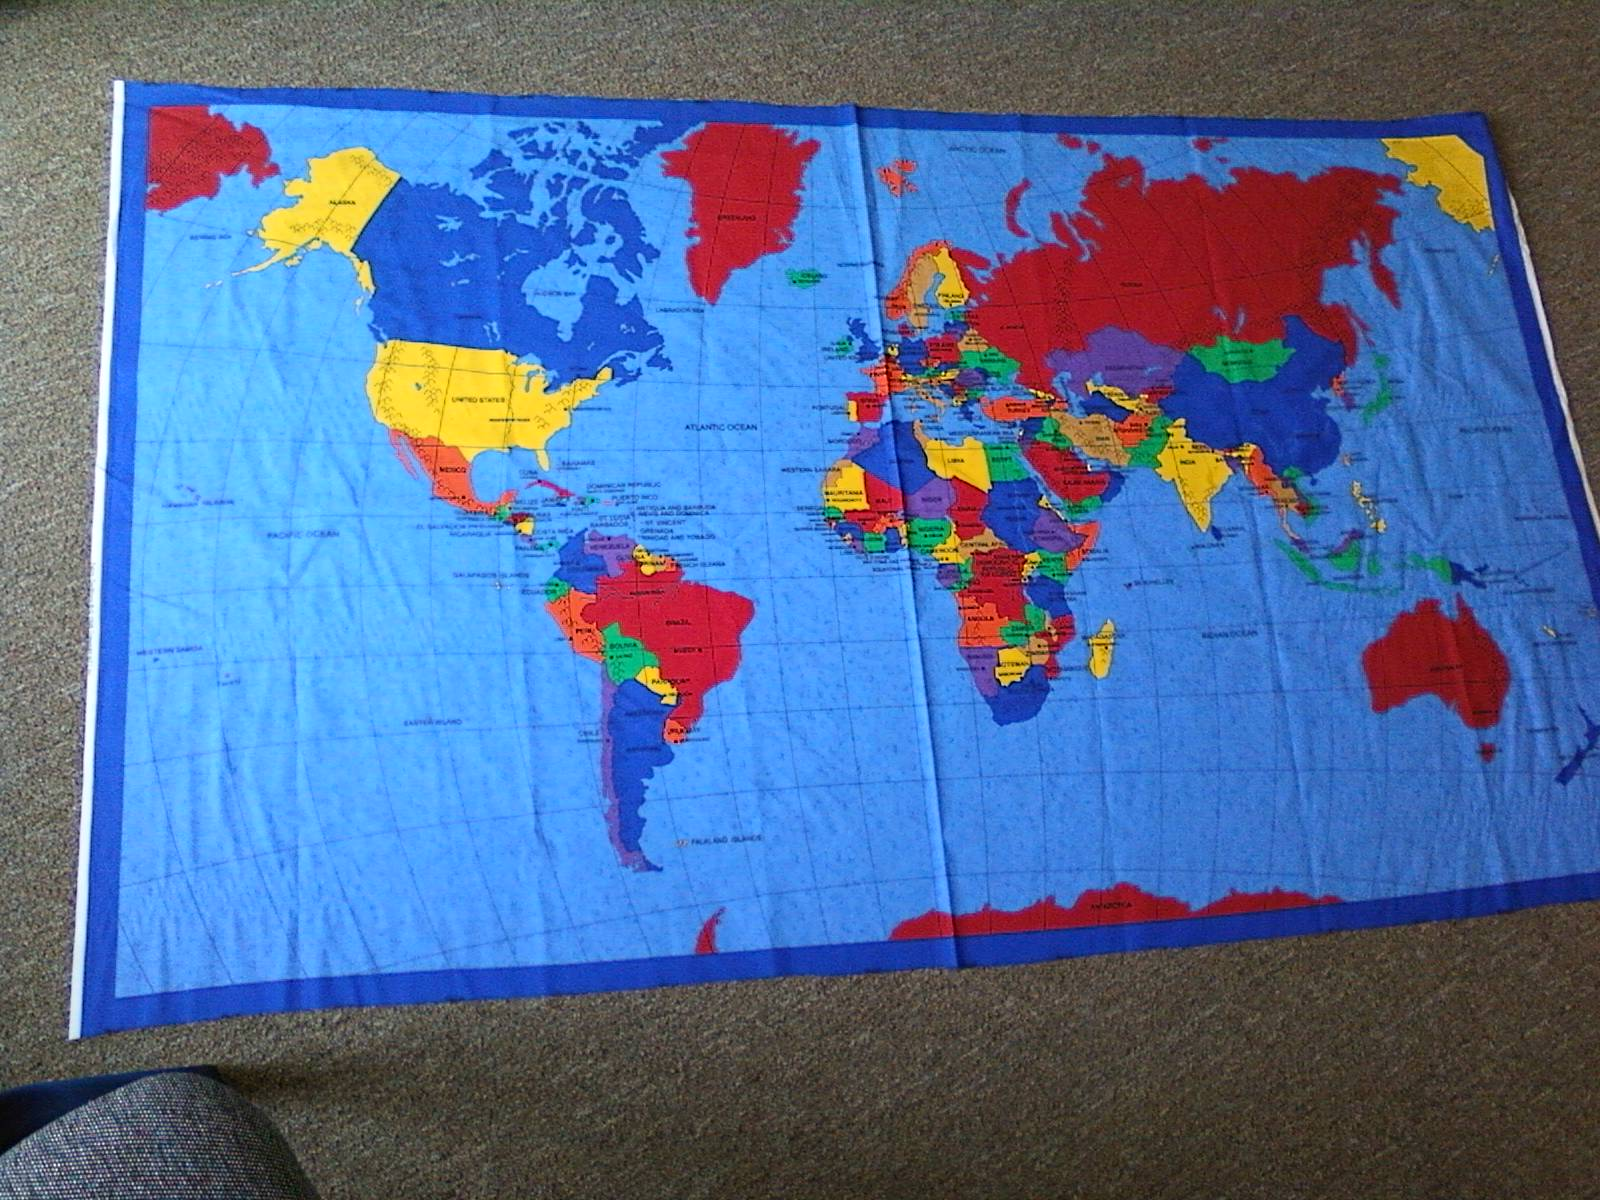 Loeptest world map for mobile classrooms this wonderful classroom visual teaching aid is available at jo anns fabrics store for less than 5 per panel and with the current sale going on a 40 off gumiabroncs Choice Image